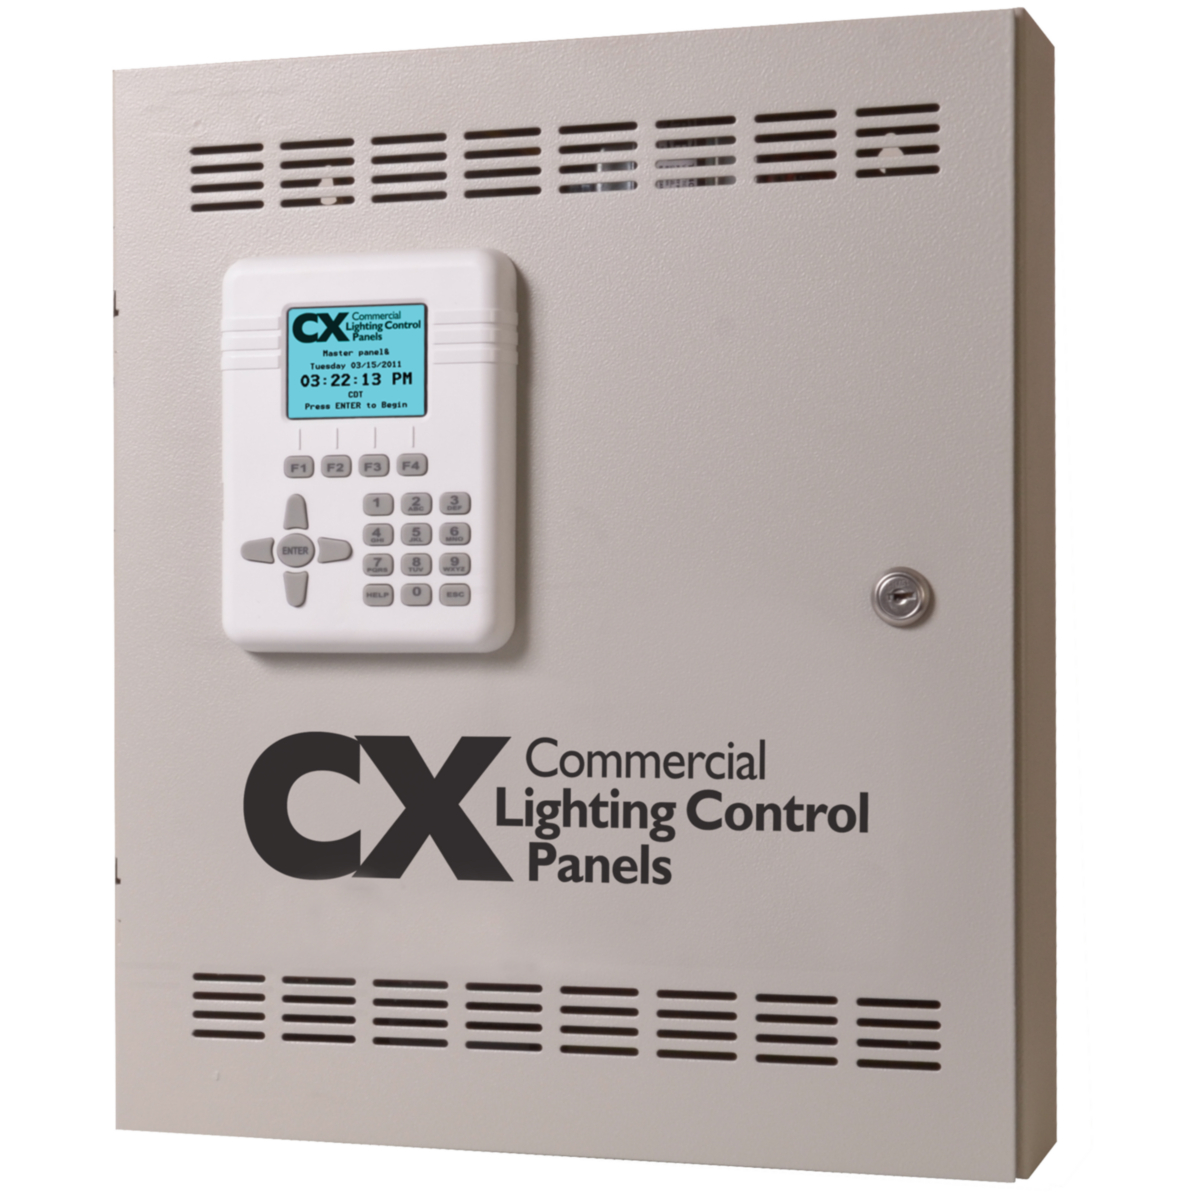 Cx Lighting Control Panels 4 And 8 Relays Brand Hubbell 220 Service Panel Wire Diagram Hcs Cx04 Jmk1192 3 Prodimage